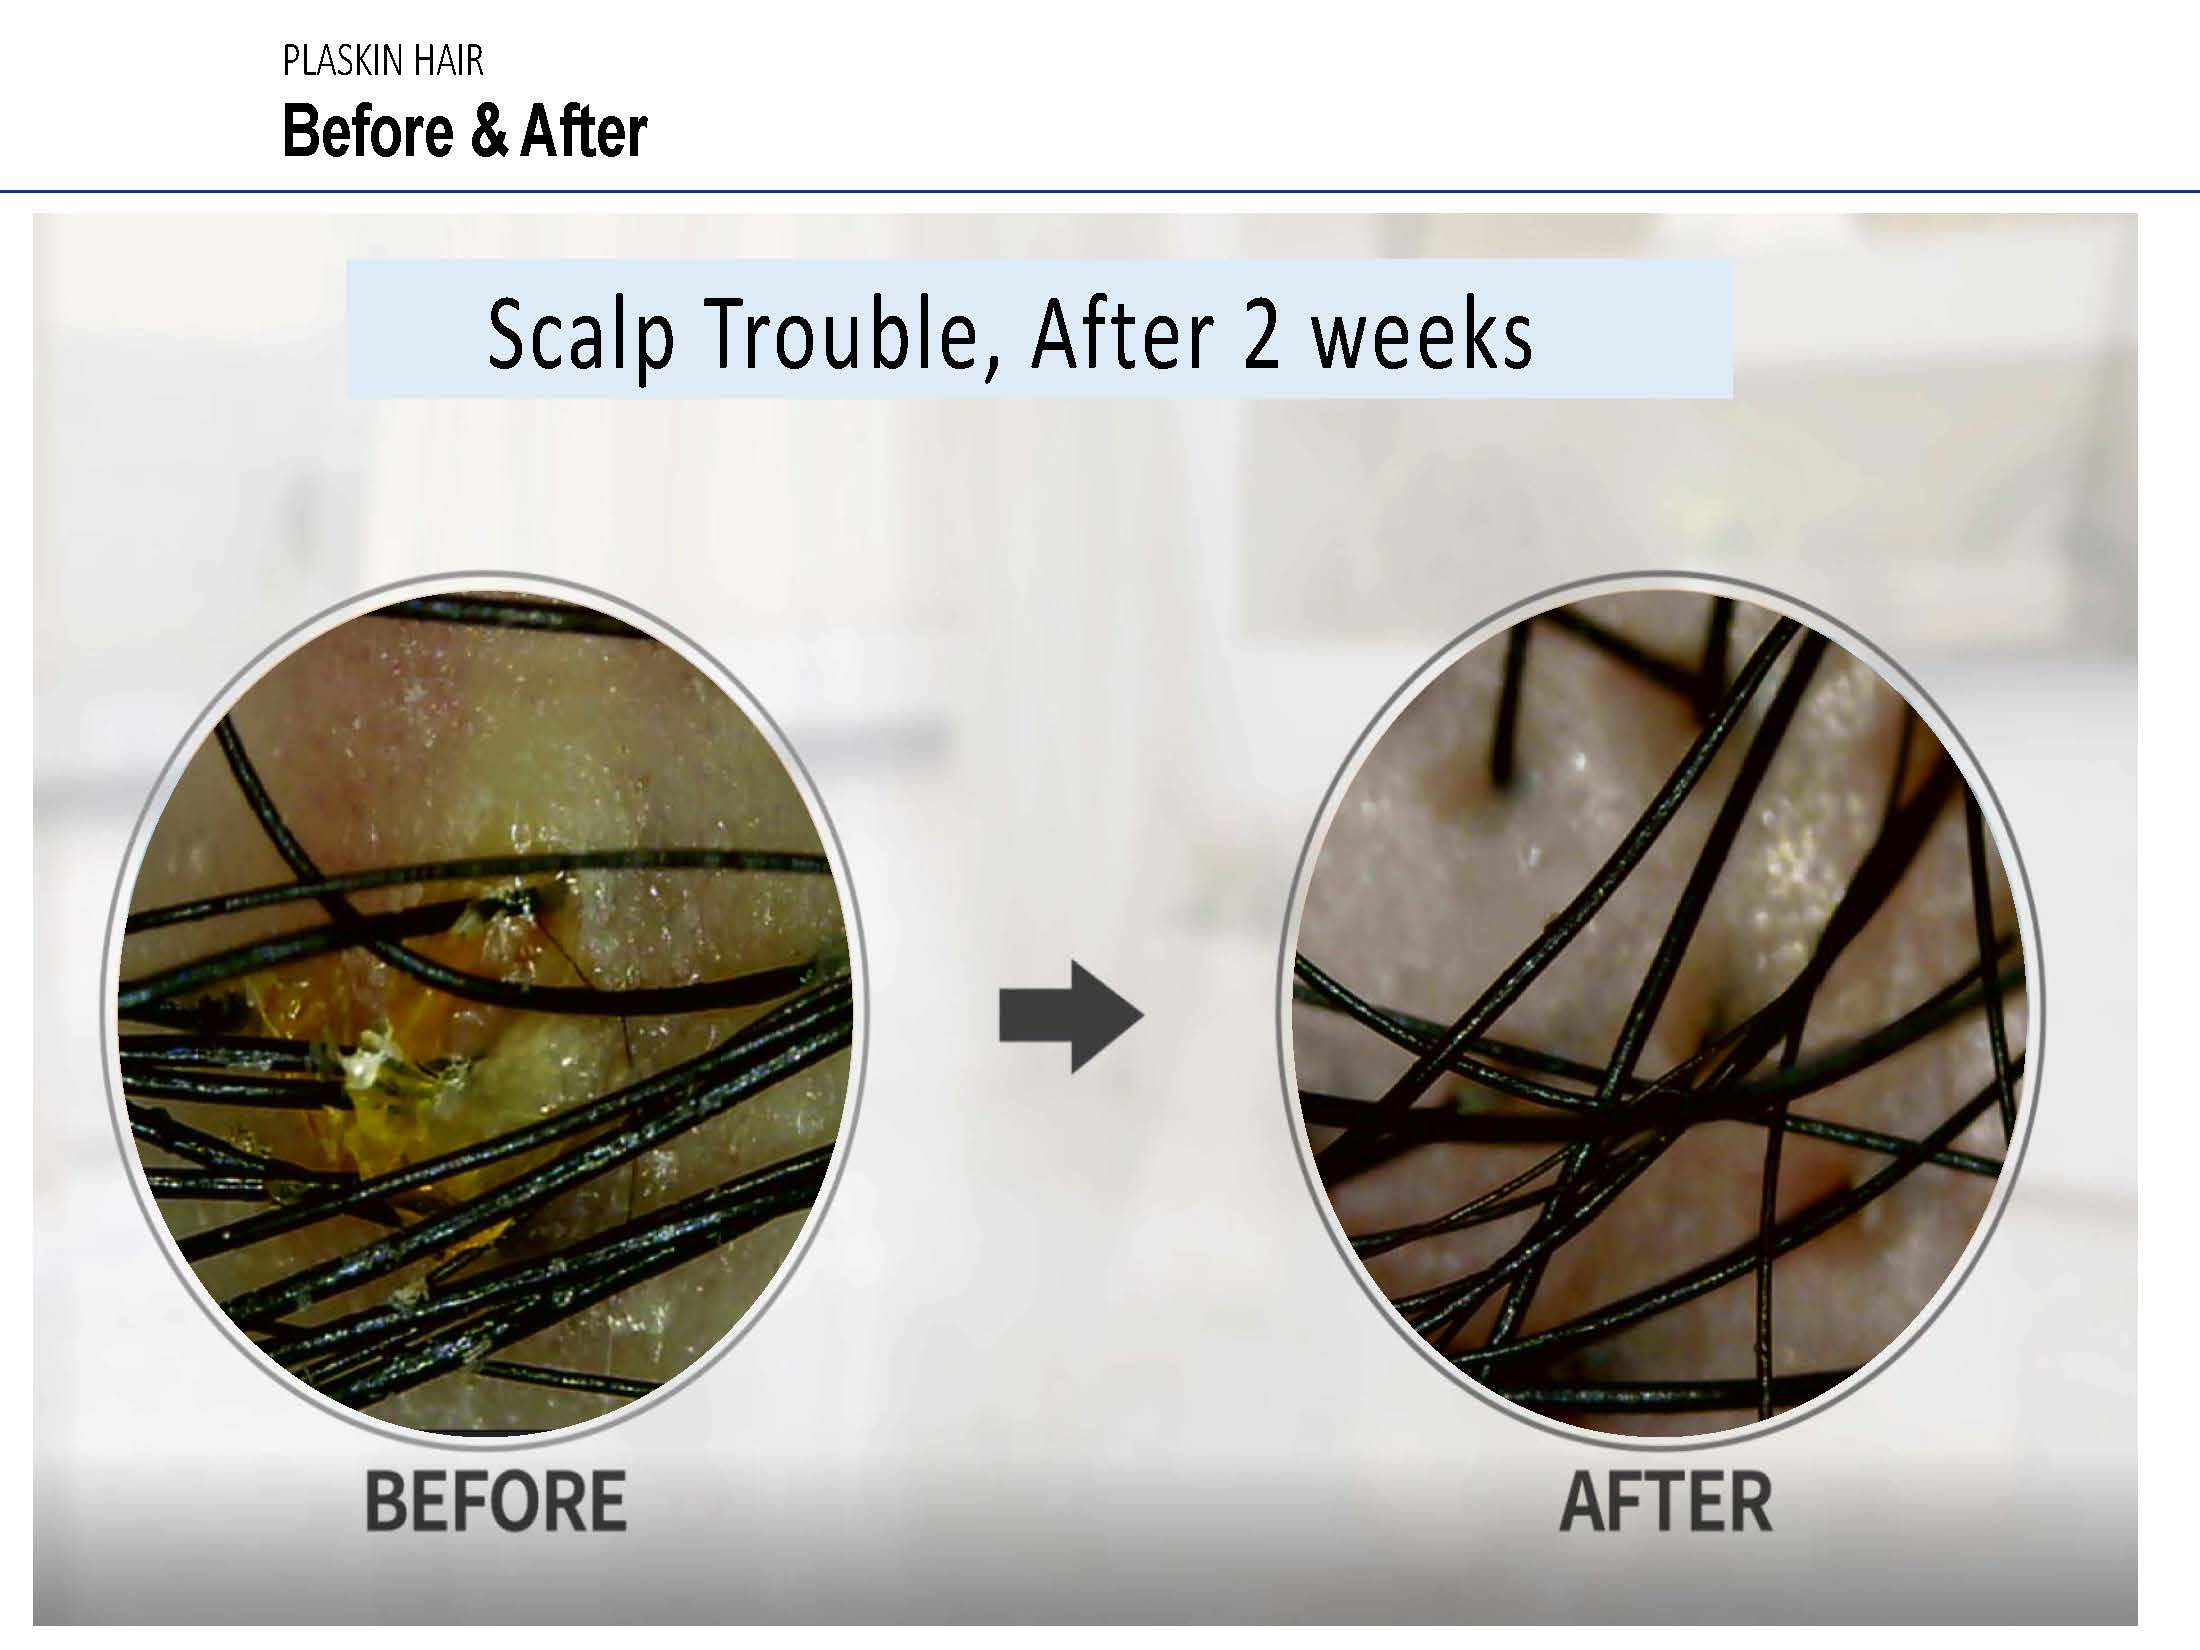 scalp trouble examples__Page_14.jpg